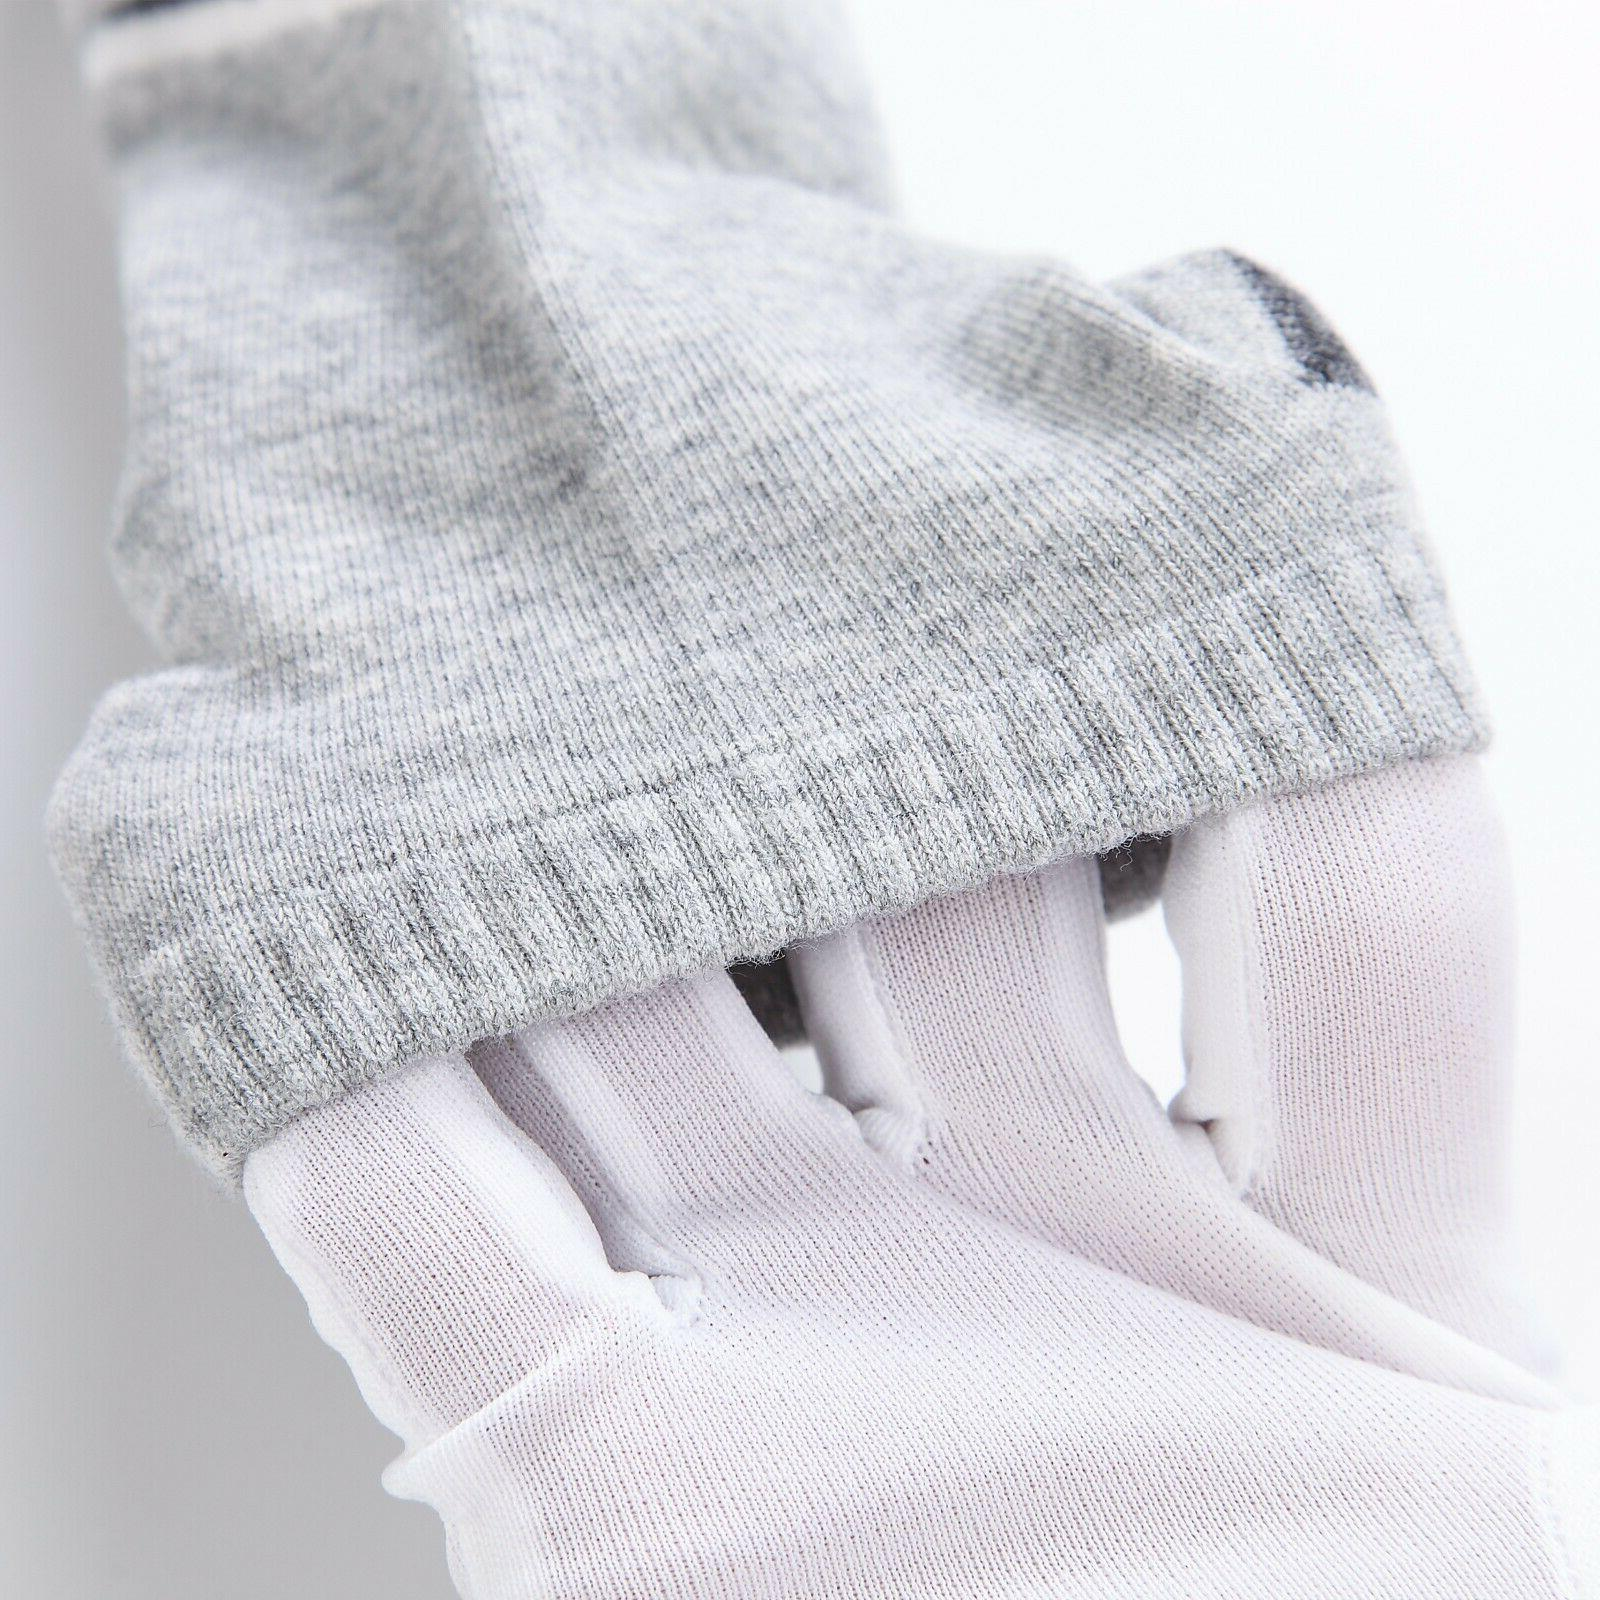 6 Cut Cotton Sport Socks,Antibacterial